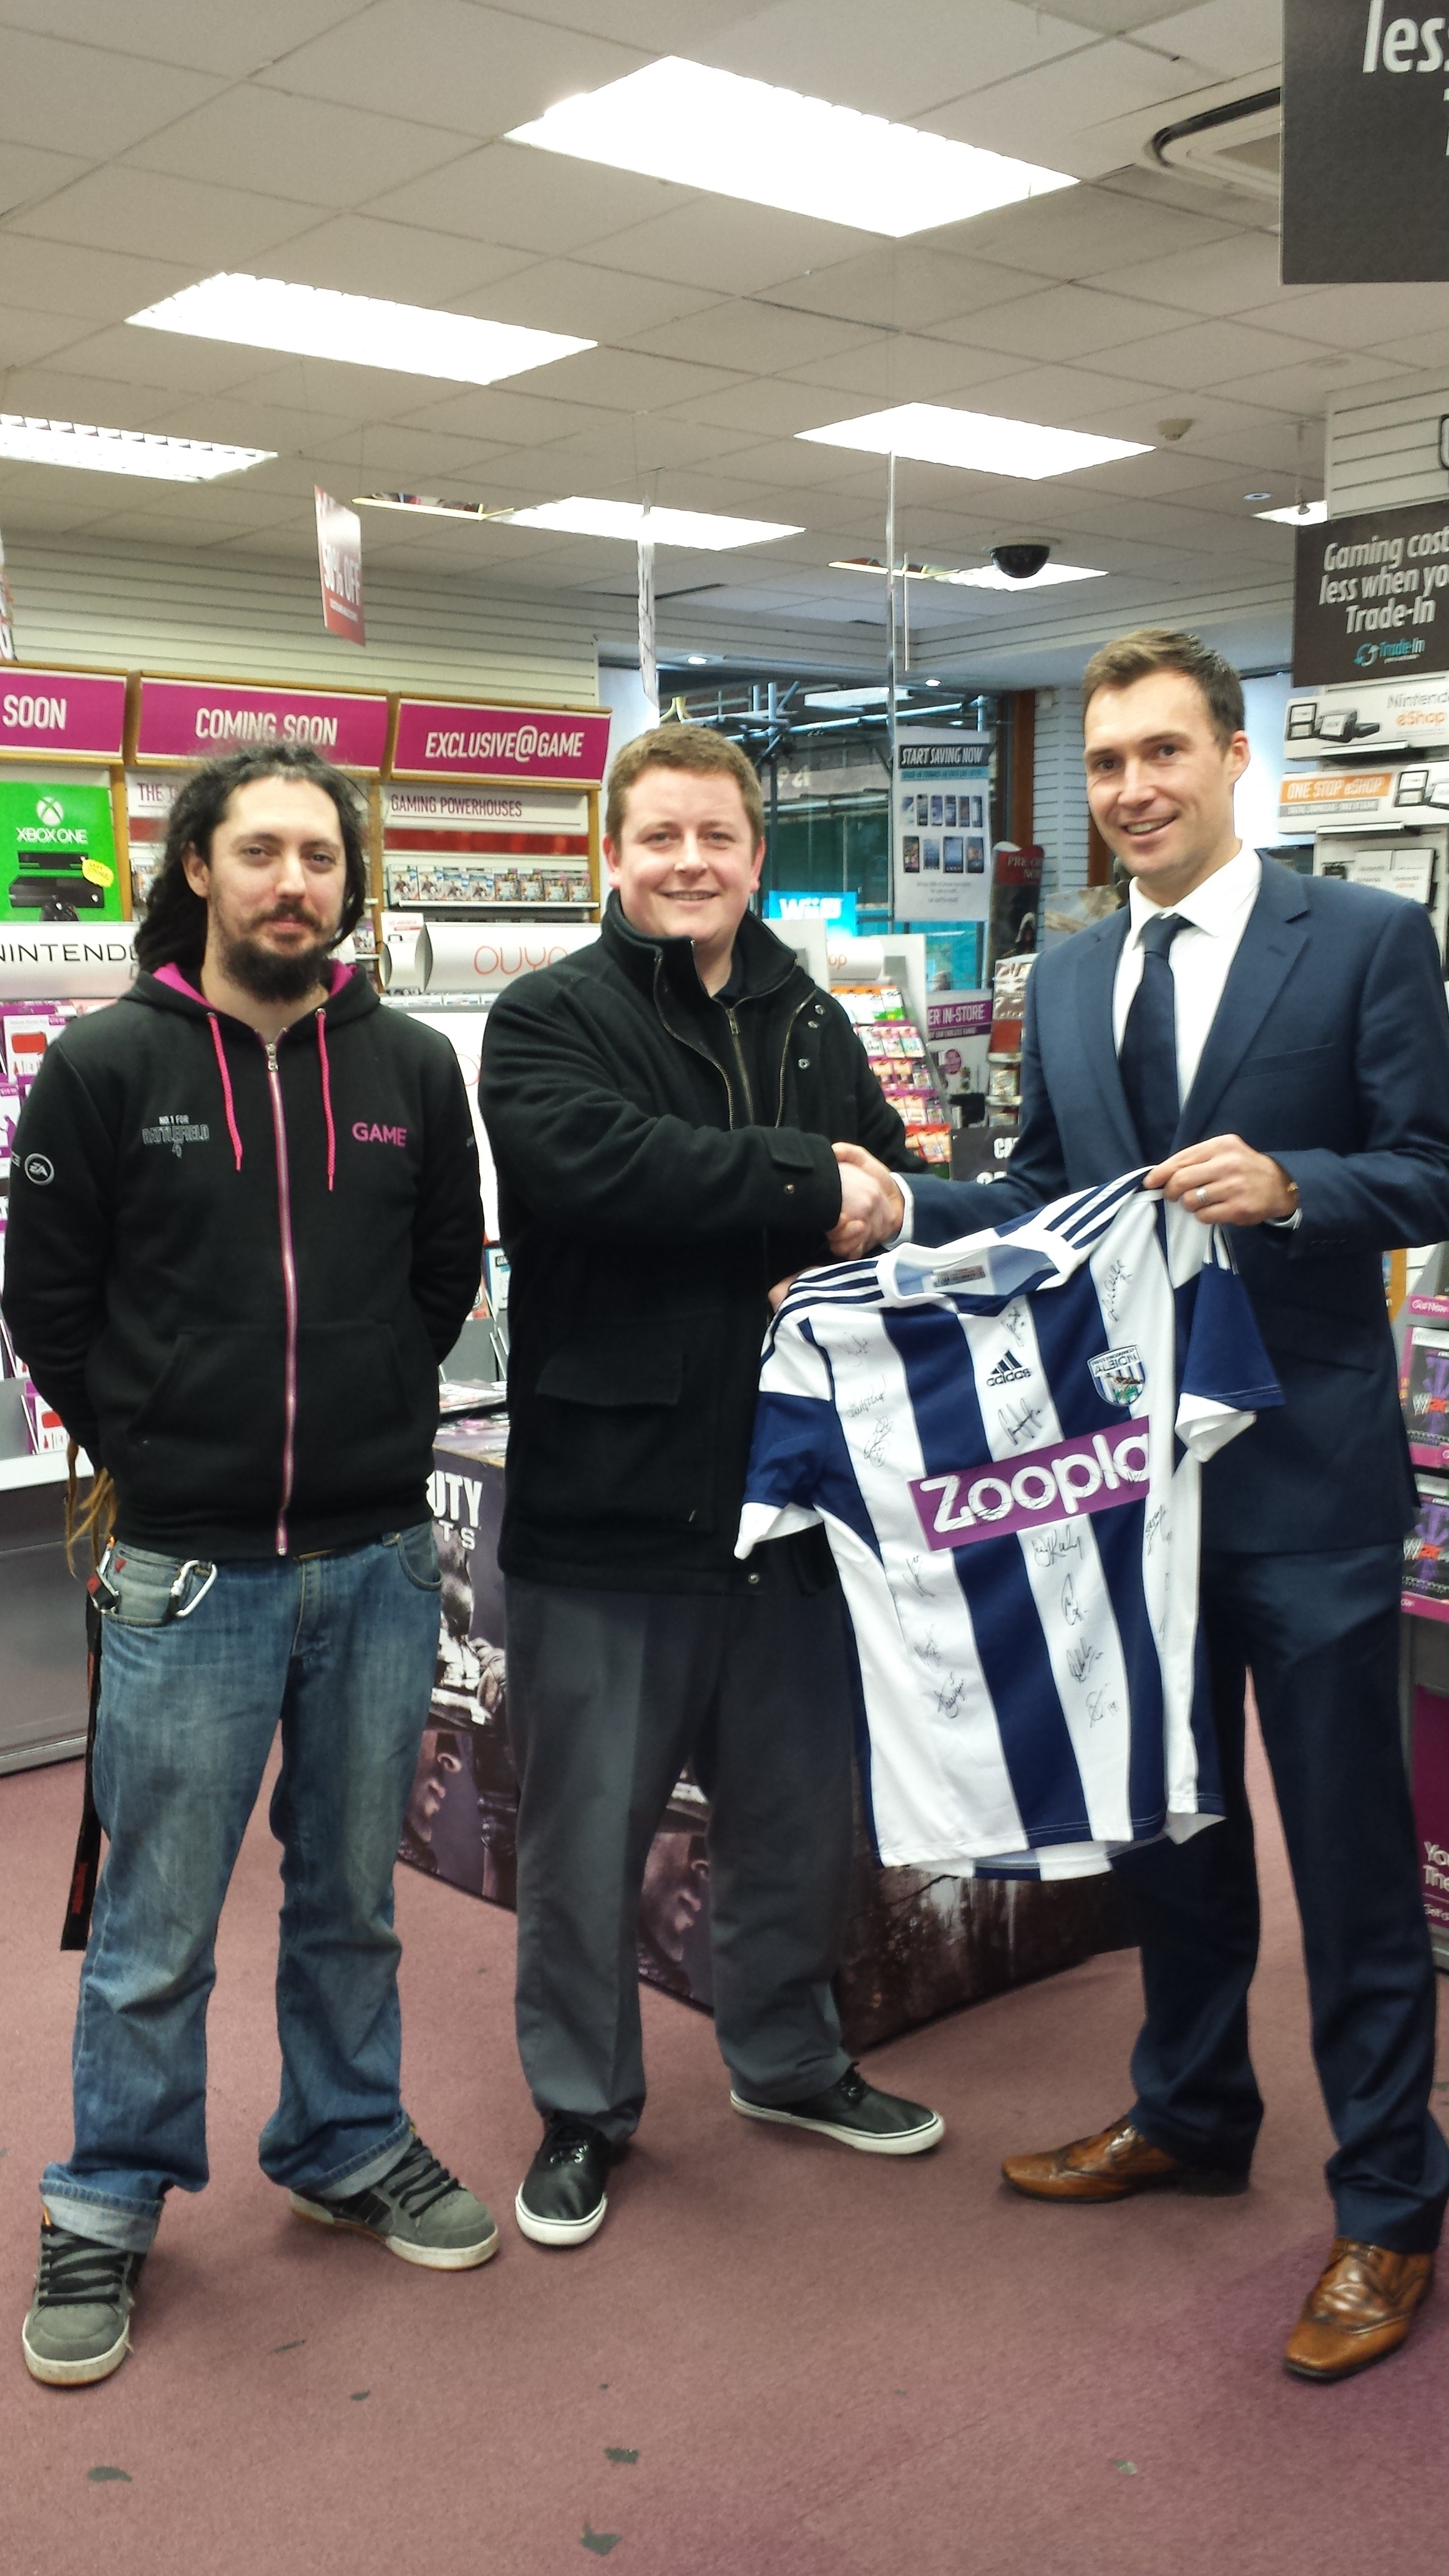 WINNER of the signed West Bromwich Albion Football Shirt